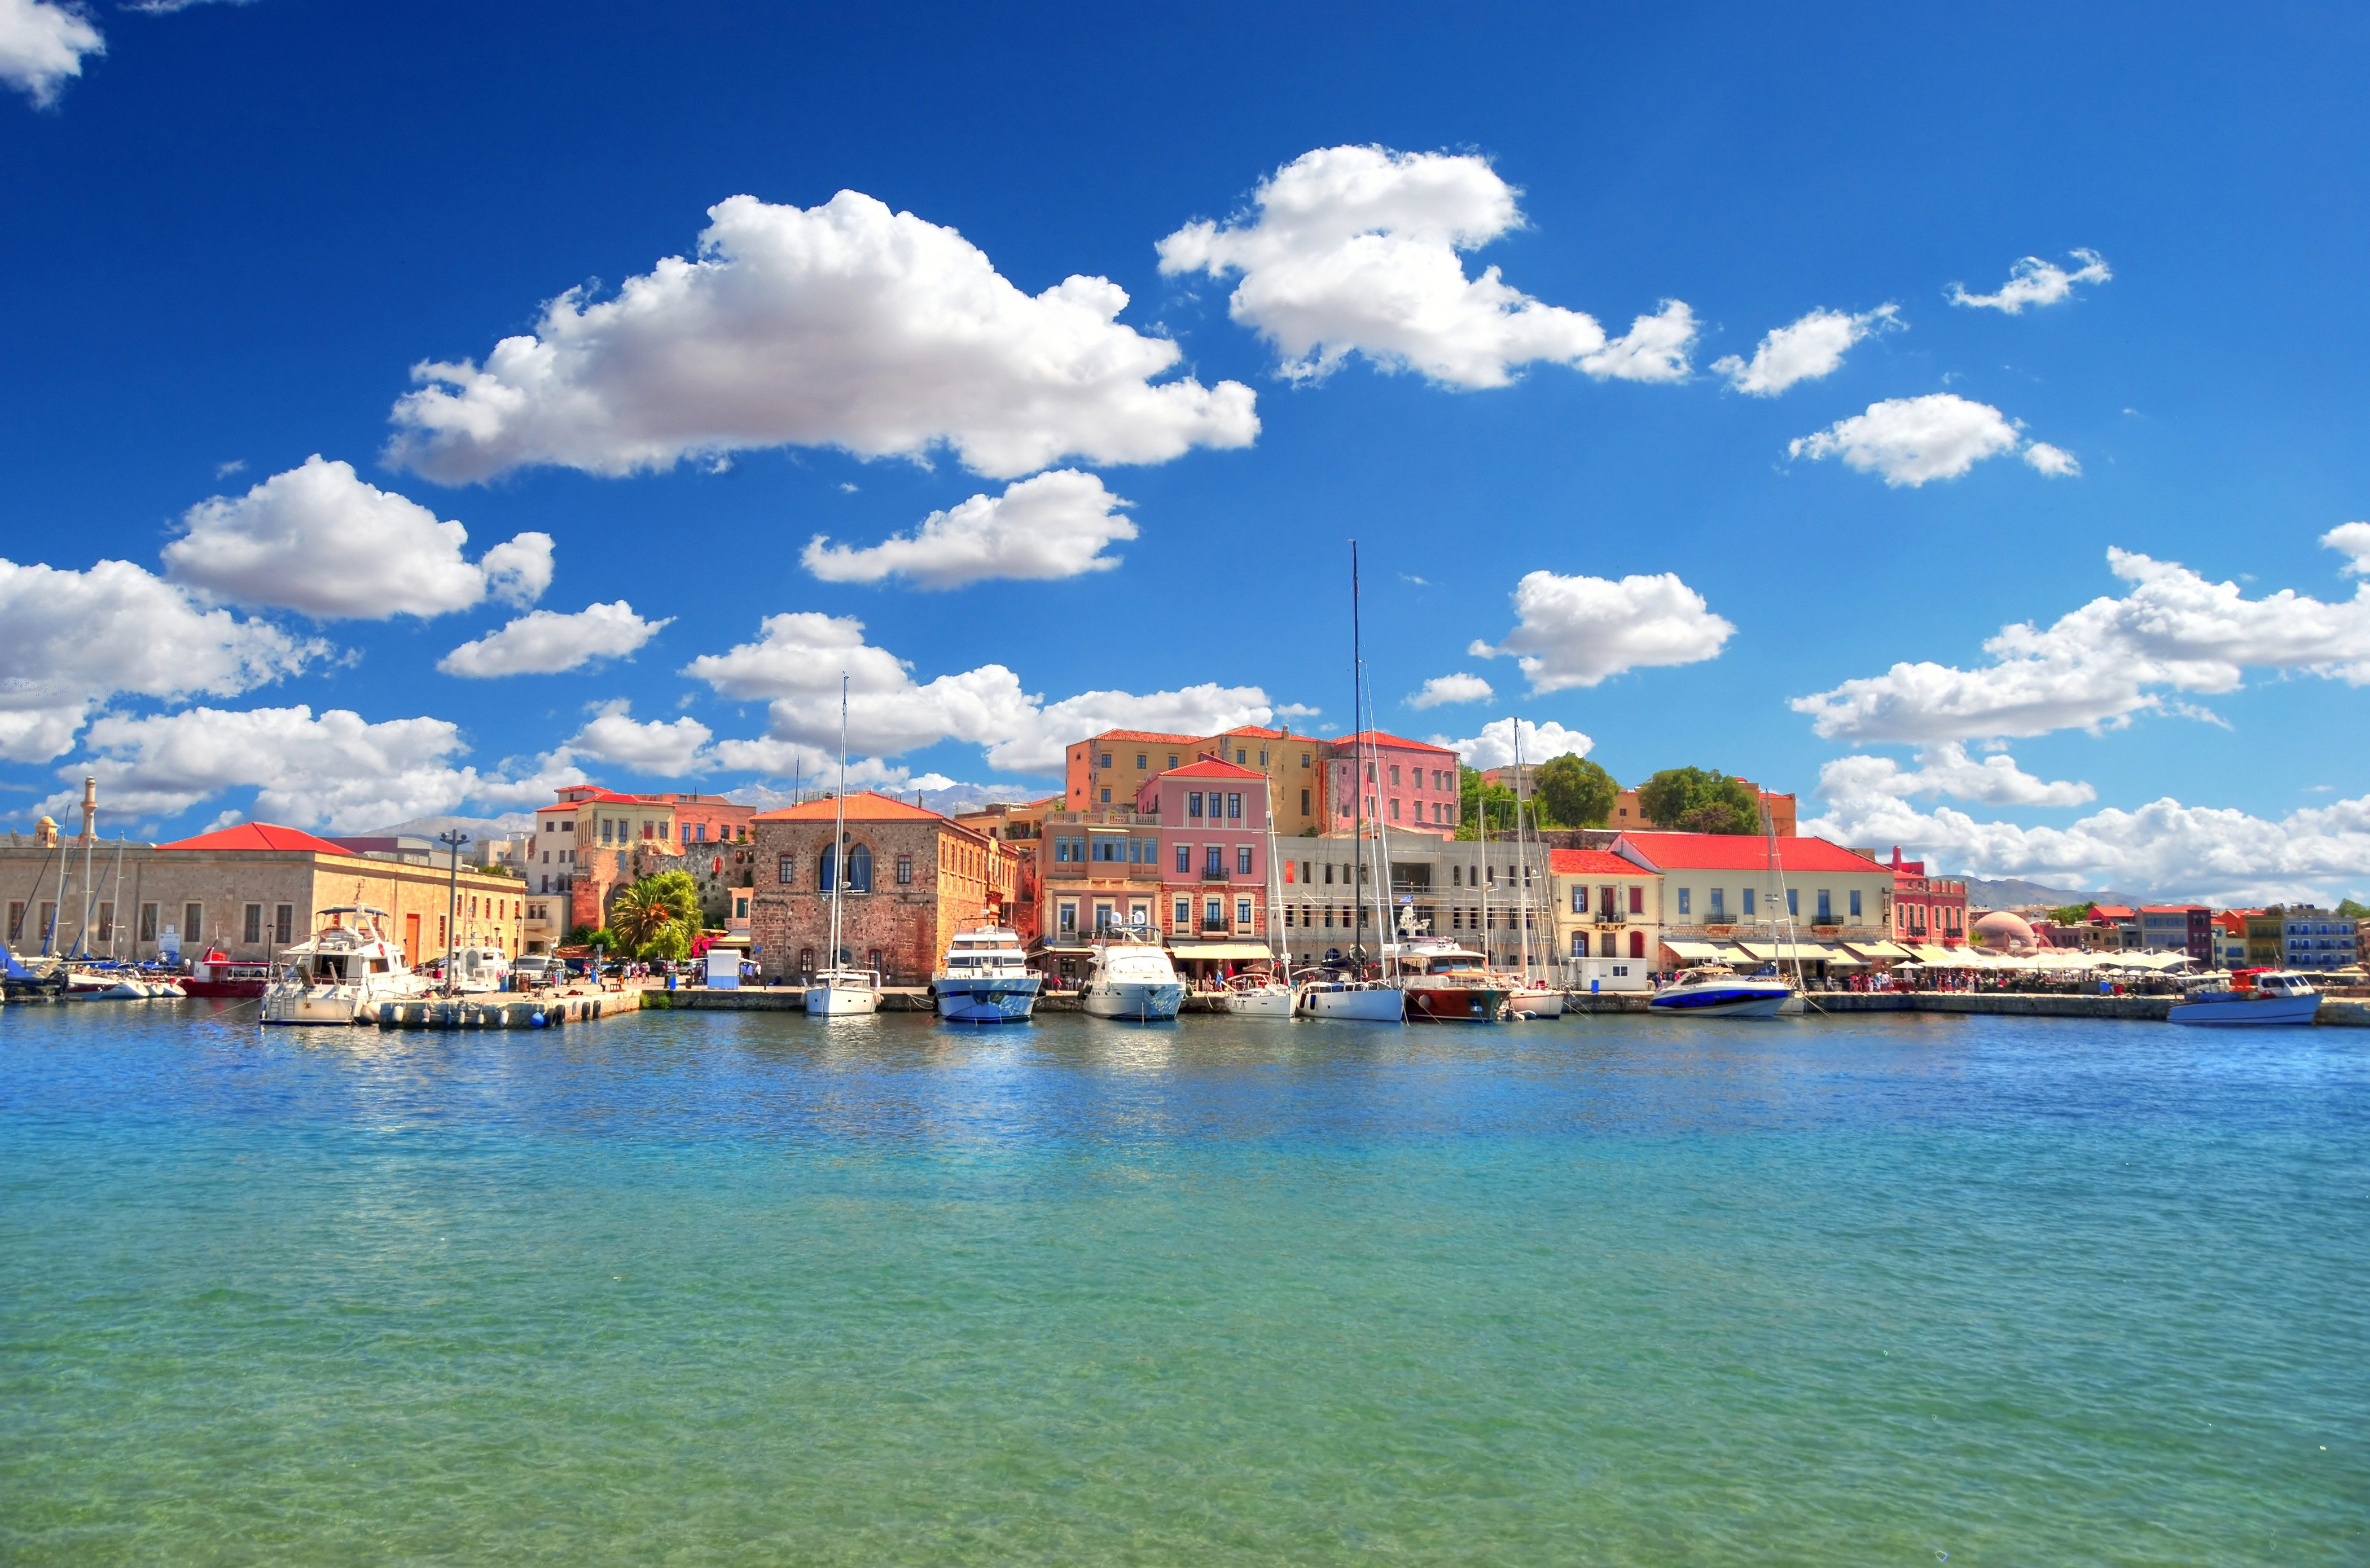 Chania, Old Venetian Harbour, Crete, Greece